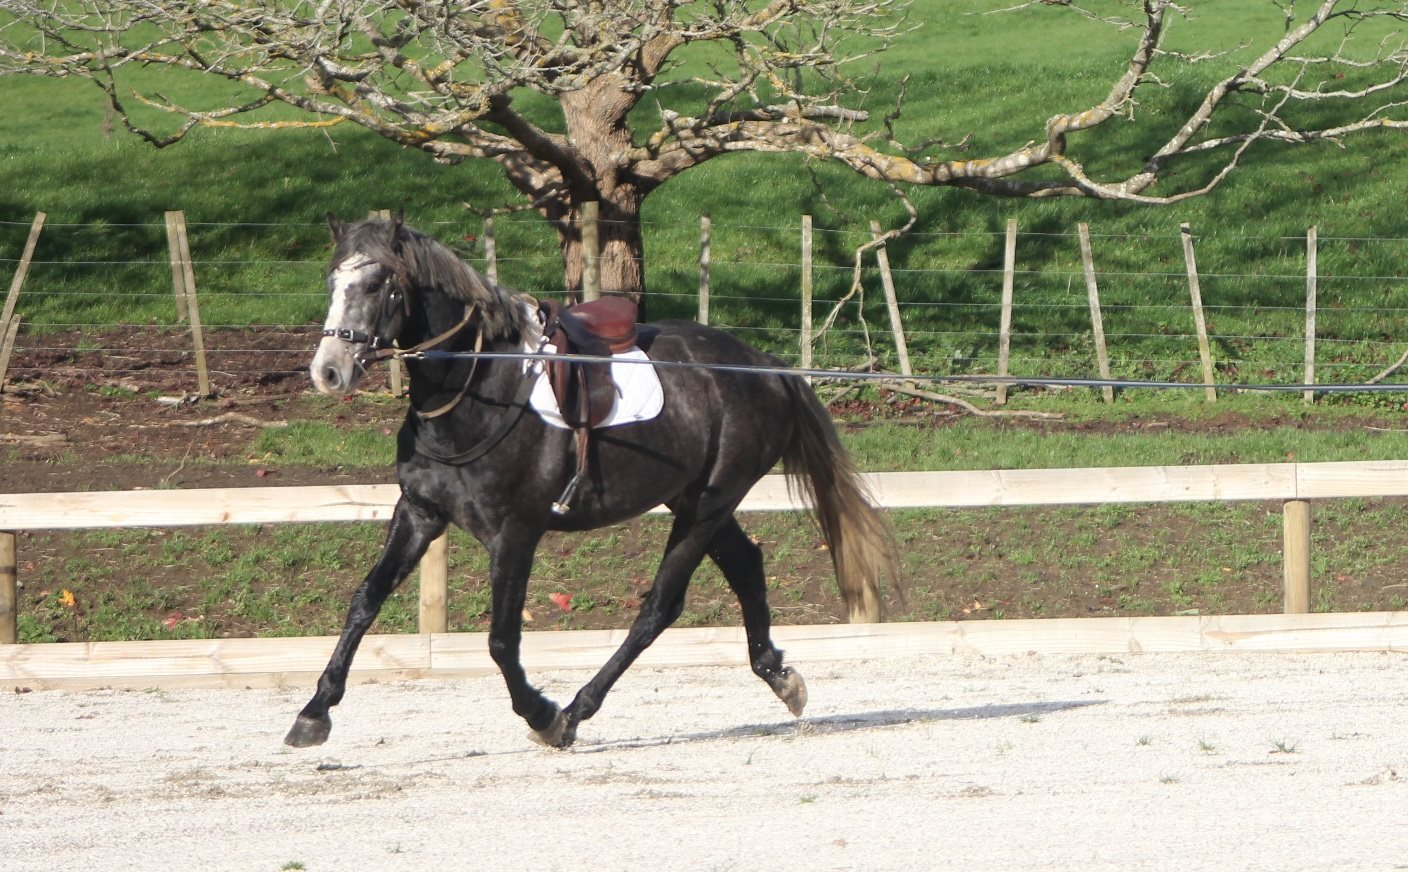 Stunning 5 yr old stallion by Ngahiwi Blue Indoctro (Indoctro VDL) out of Corland VDL mare. 16.1hh